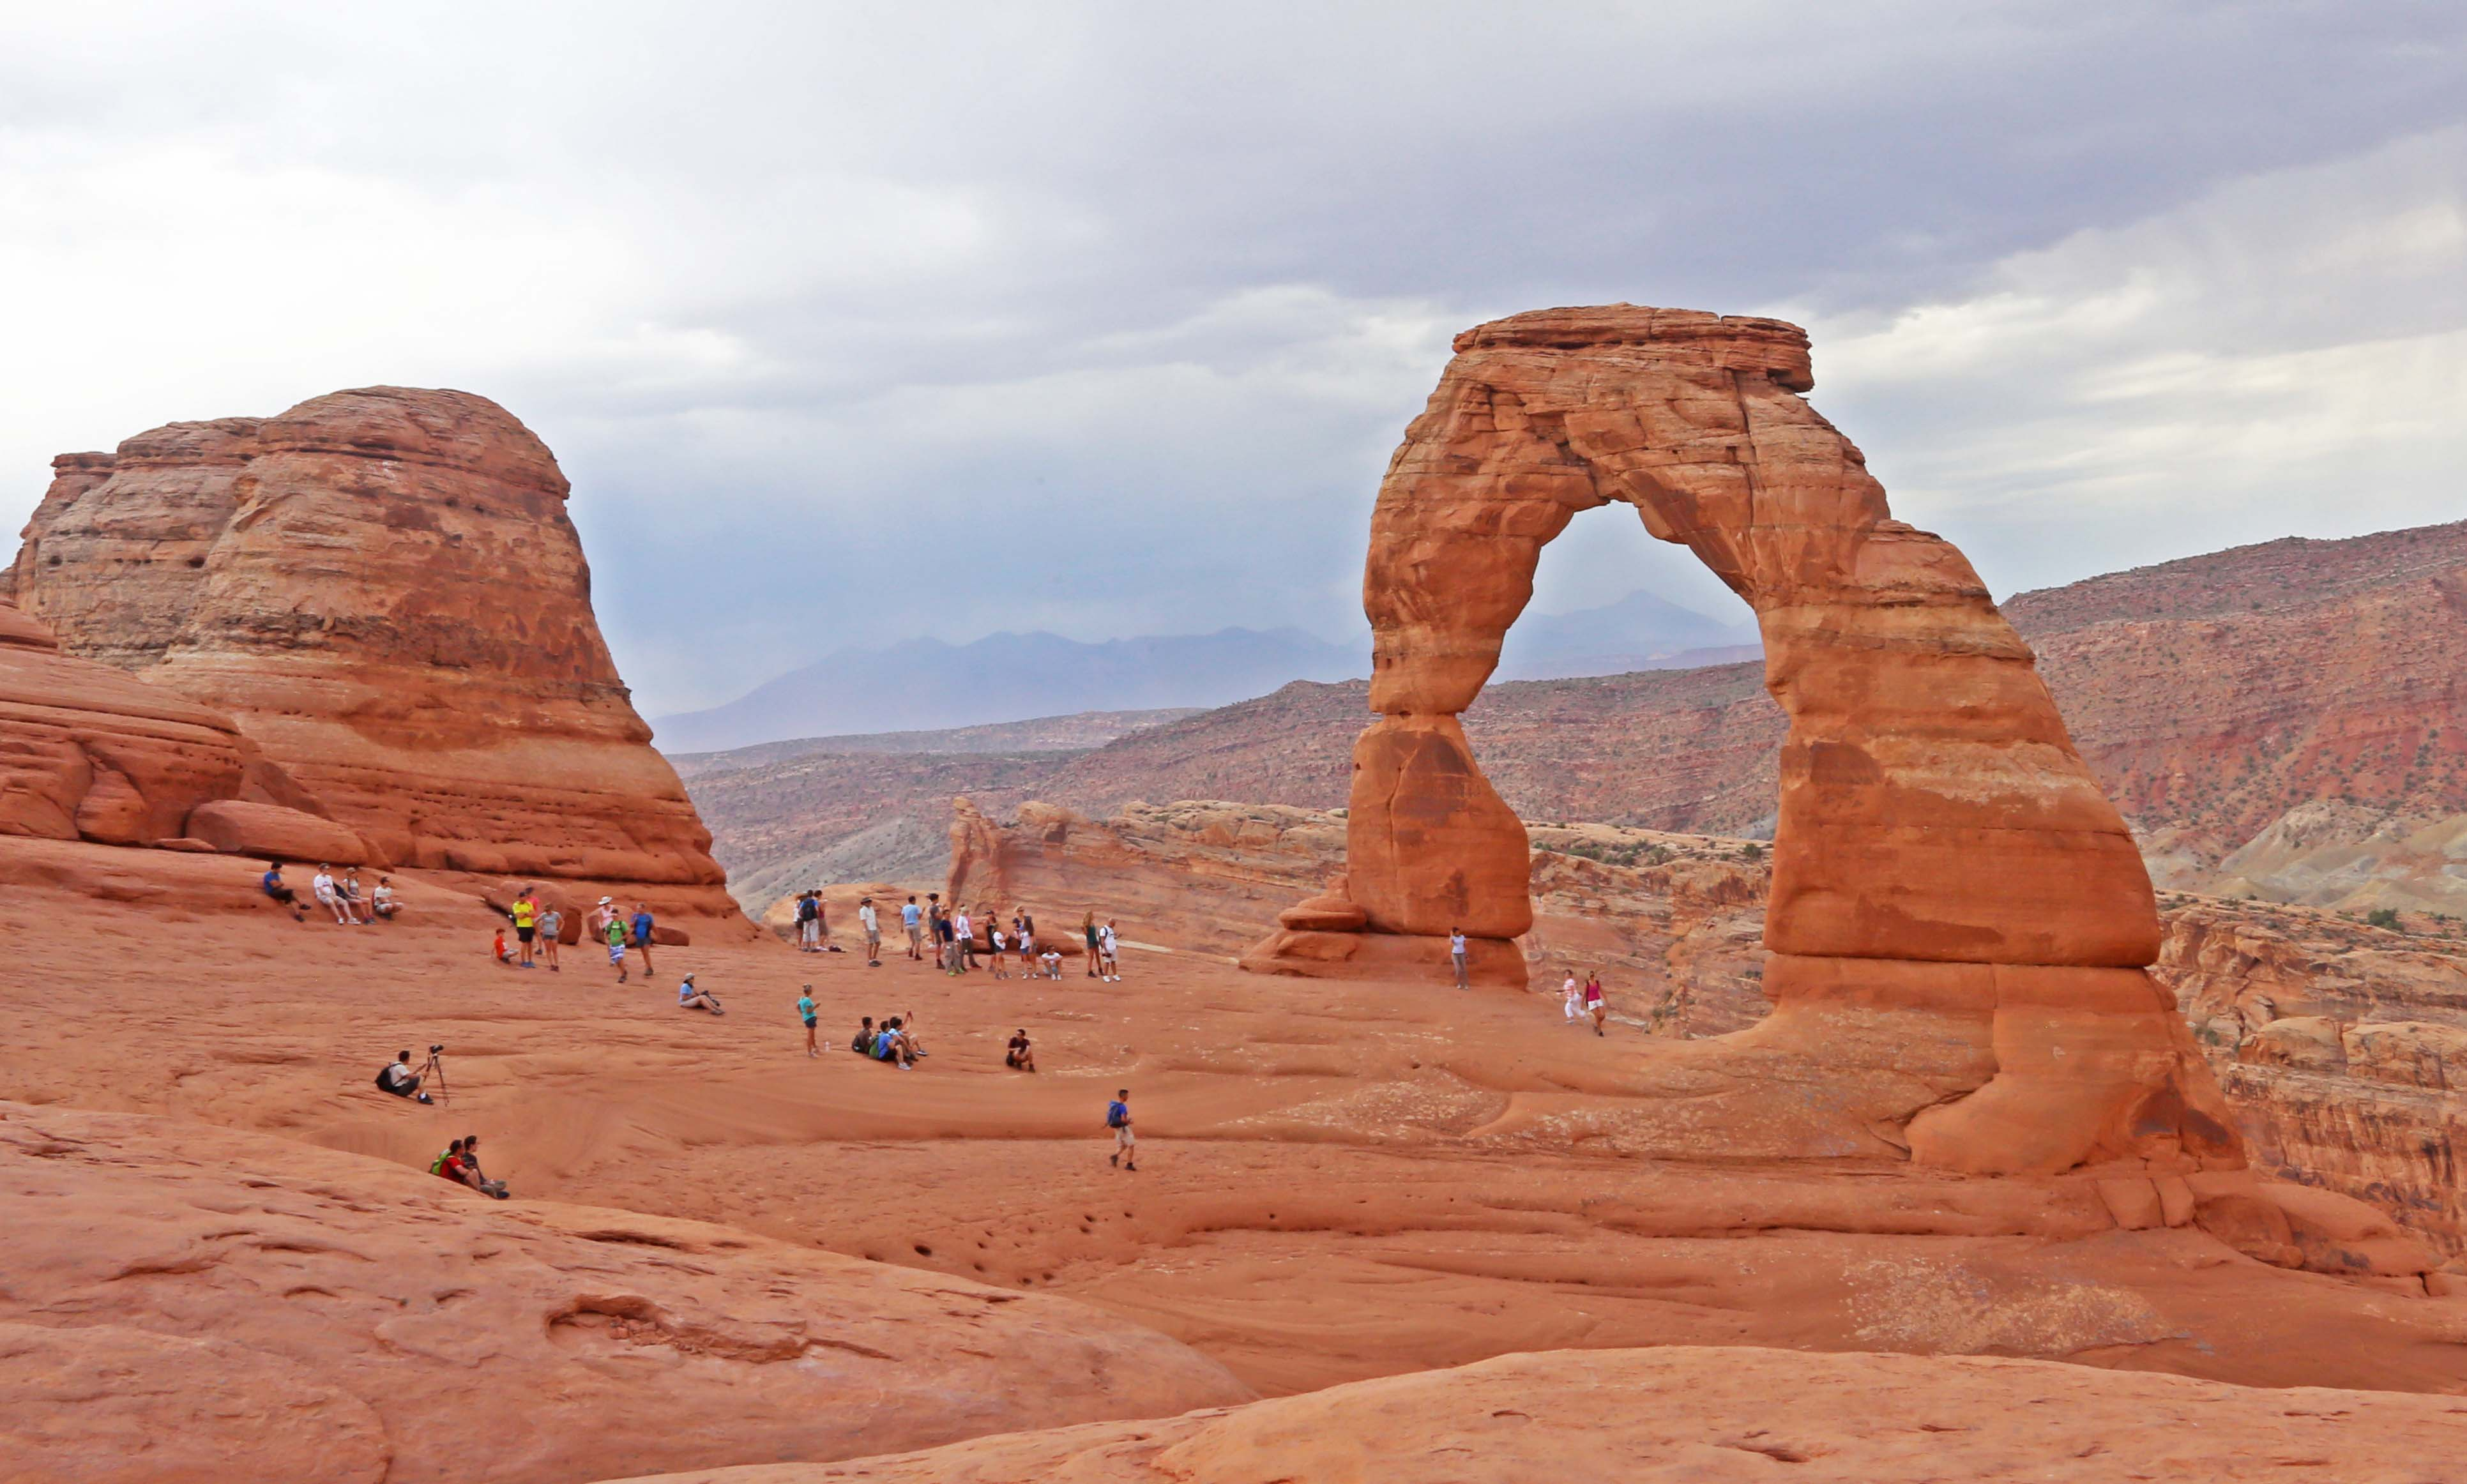 Another photo of Delicate Arch.